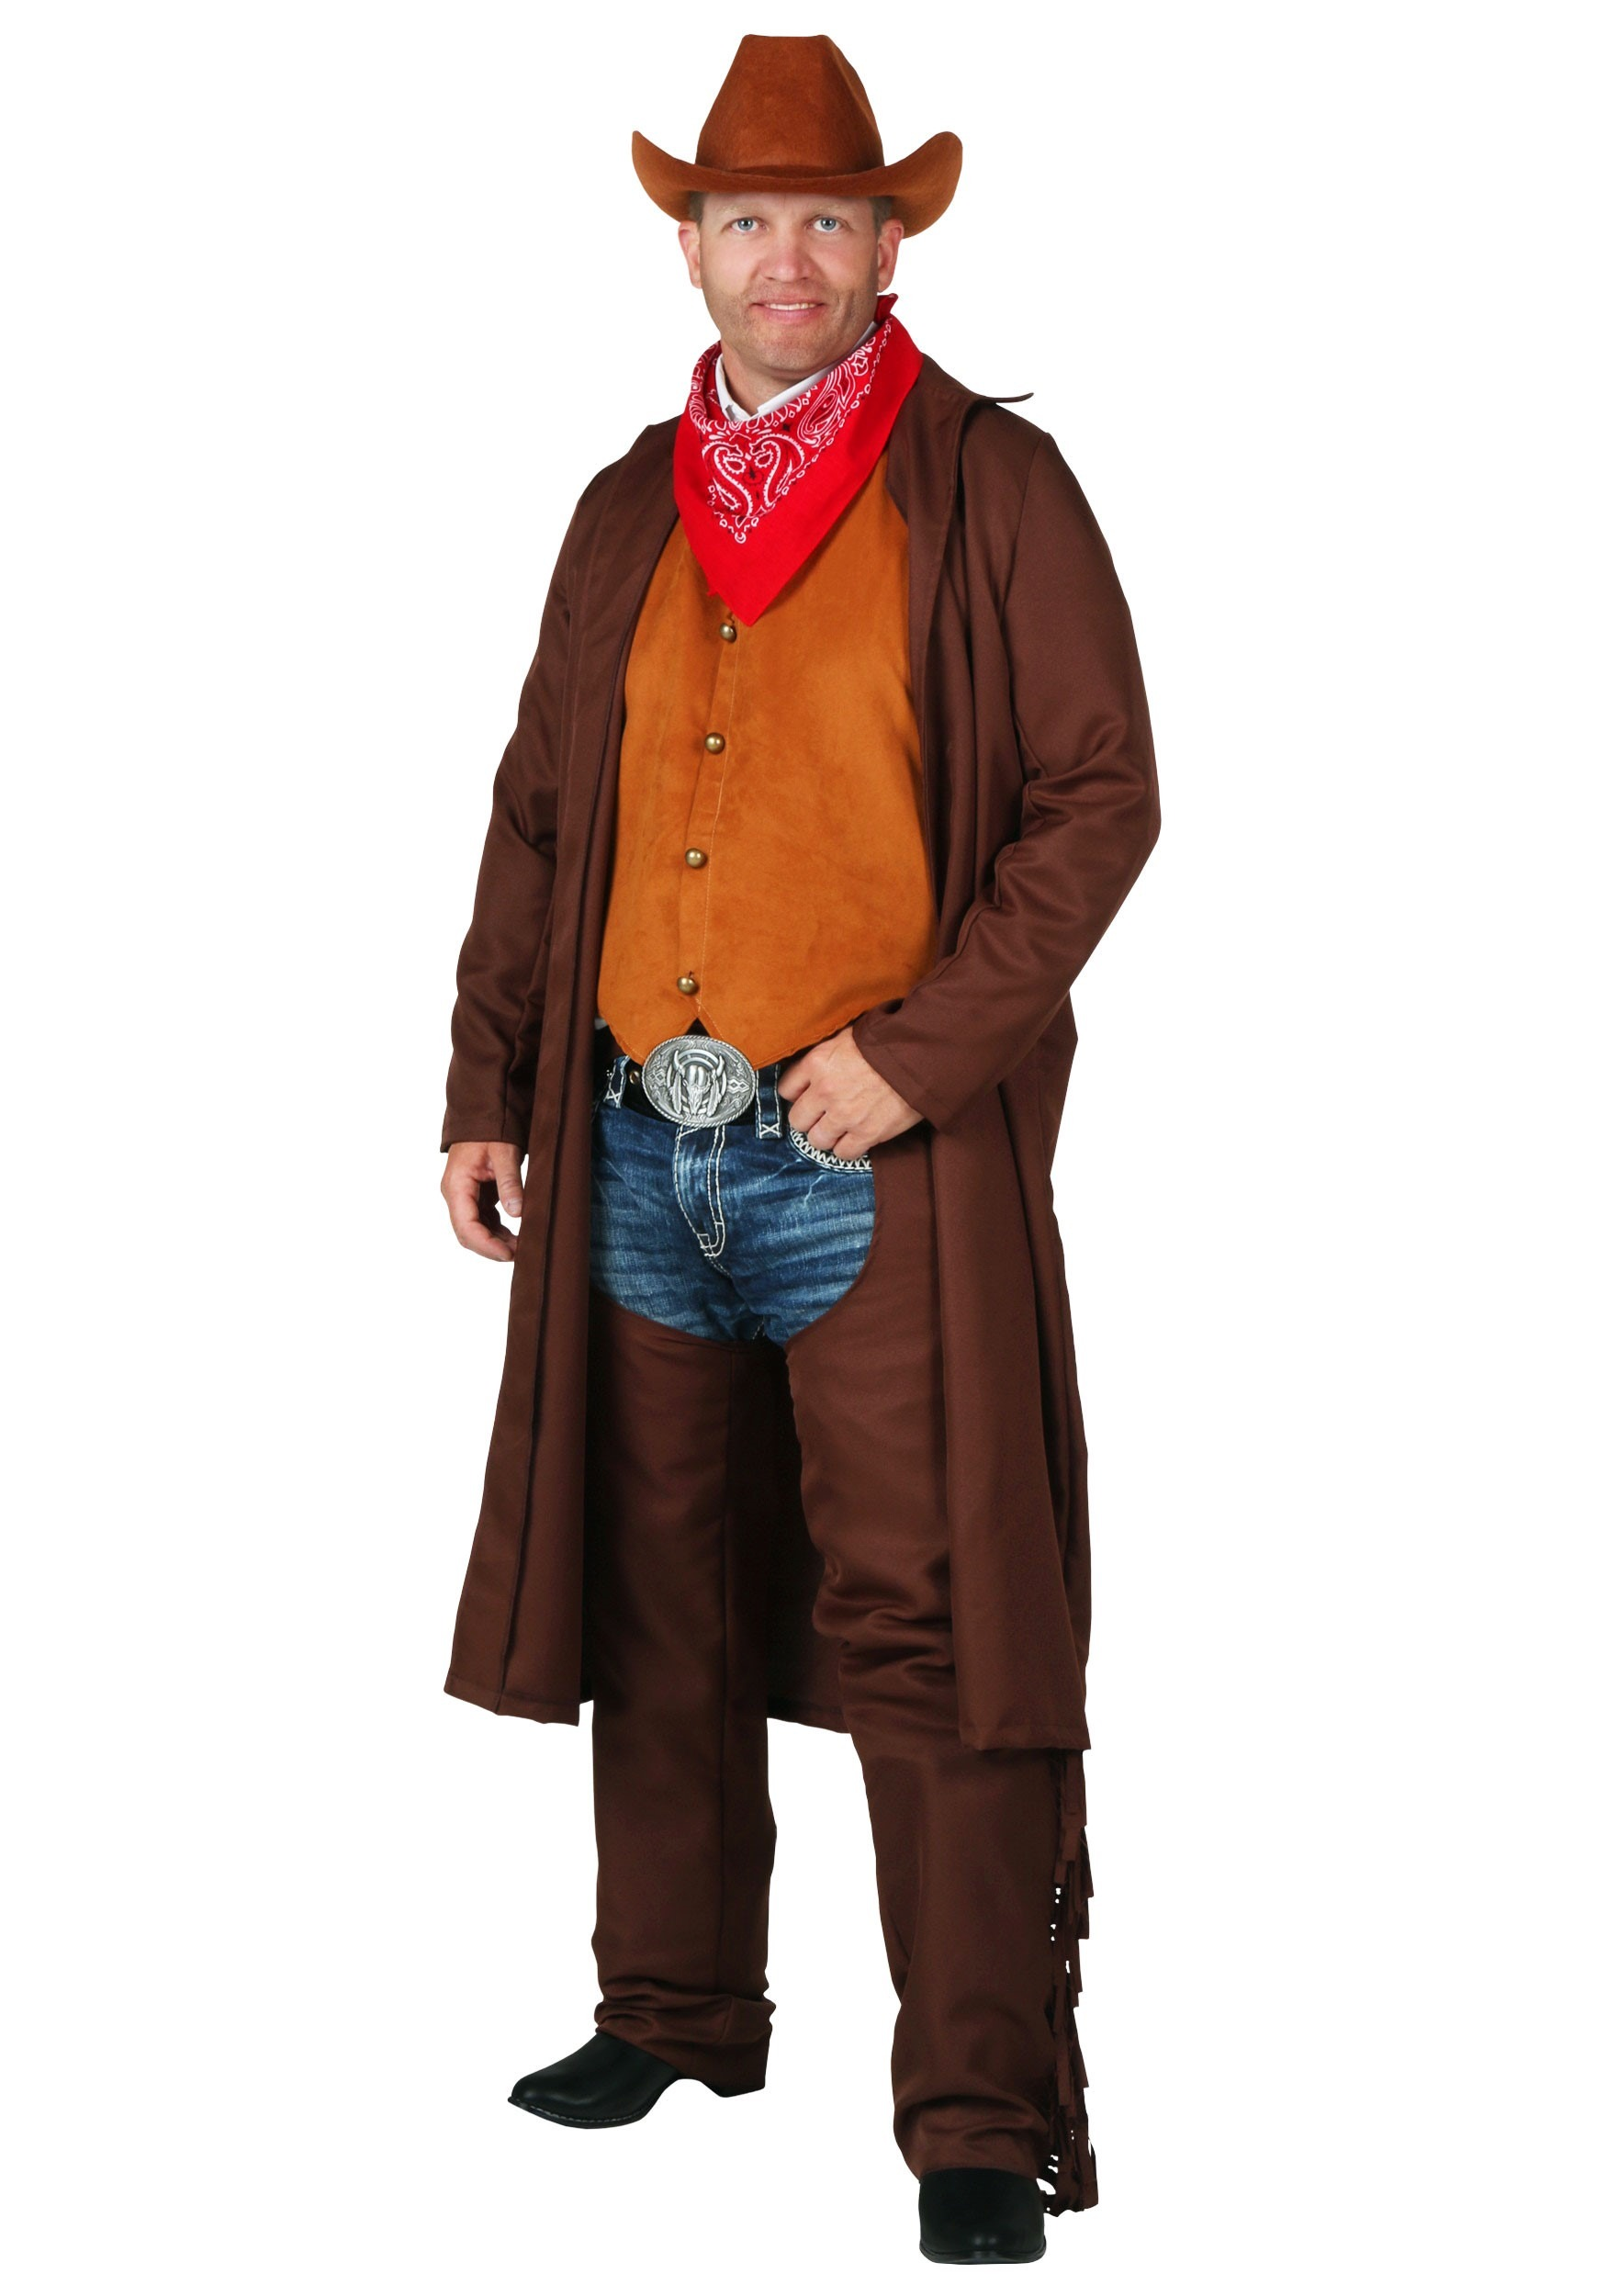 sc 1 st  Halloween Costumes & Adult Cowboy Costume